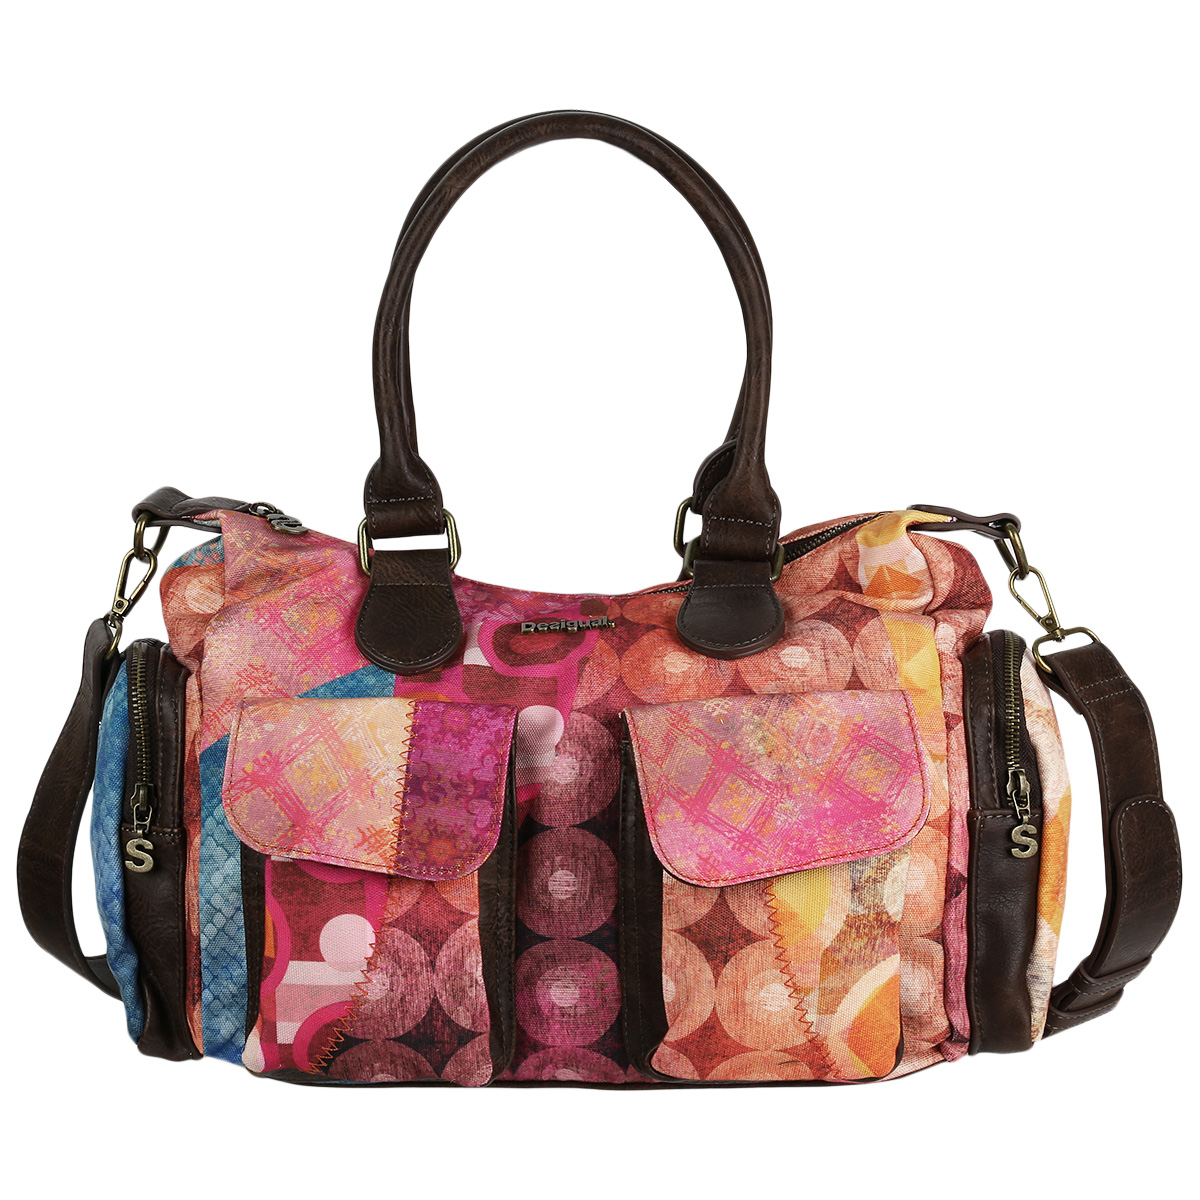 Desigual Damen Handtasche Bols Colorado London Medium 18WAXFX8/3002